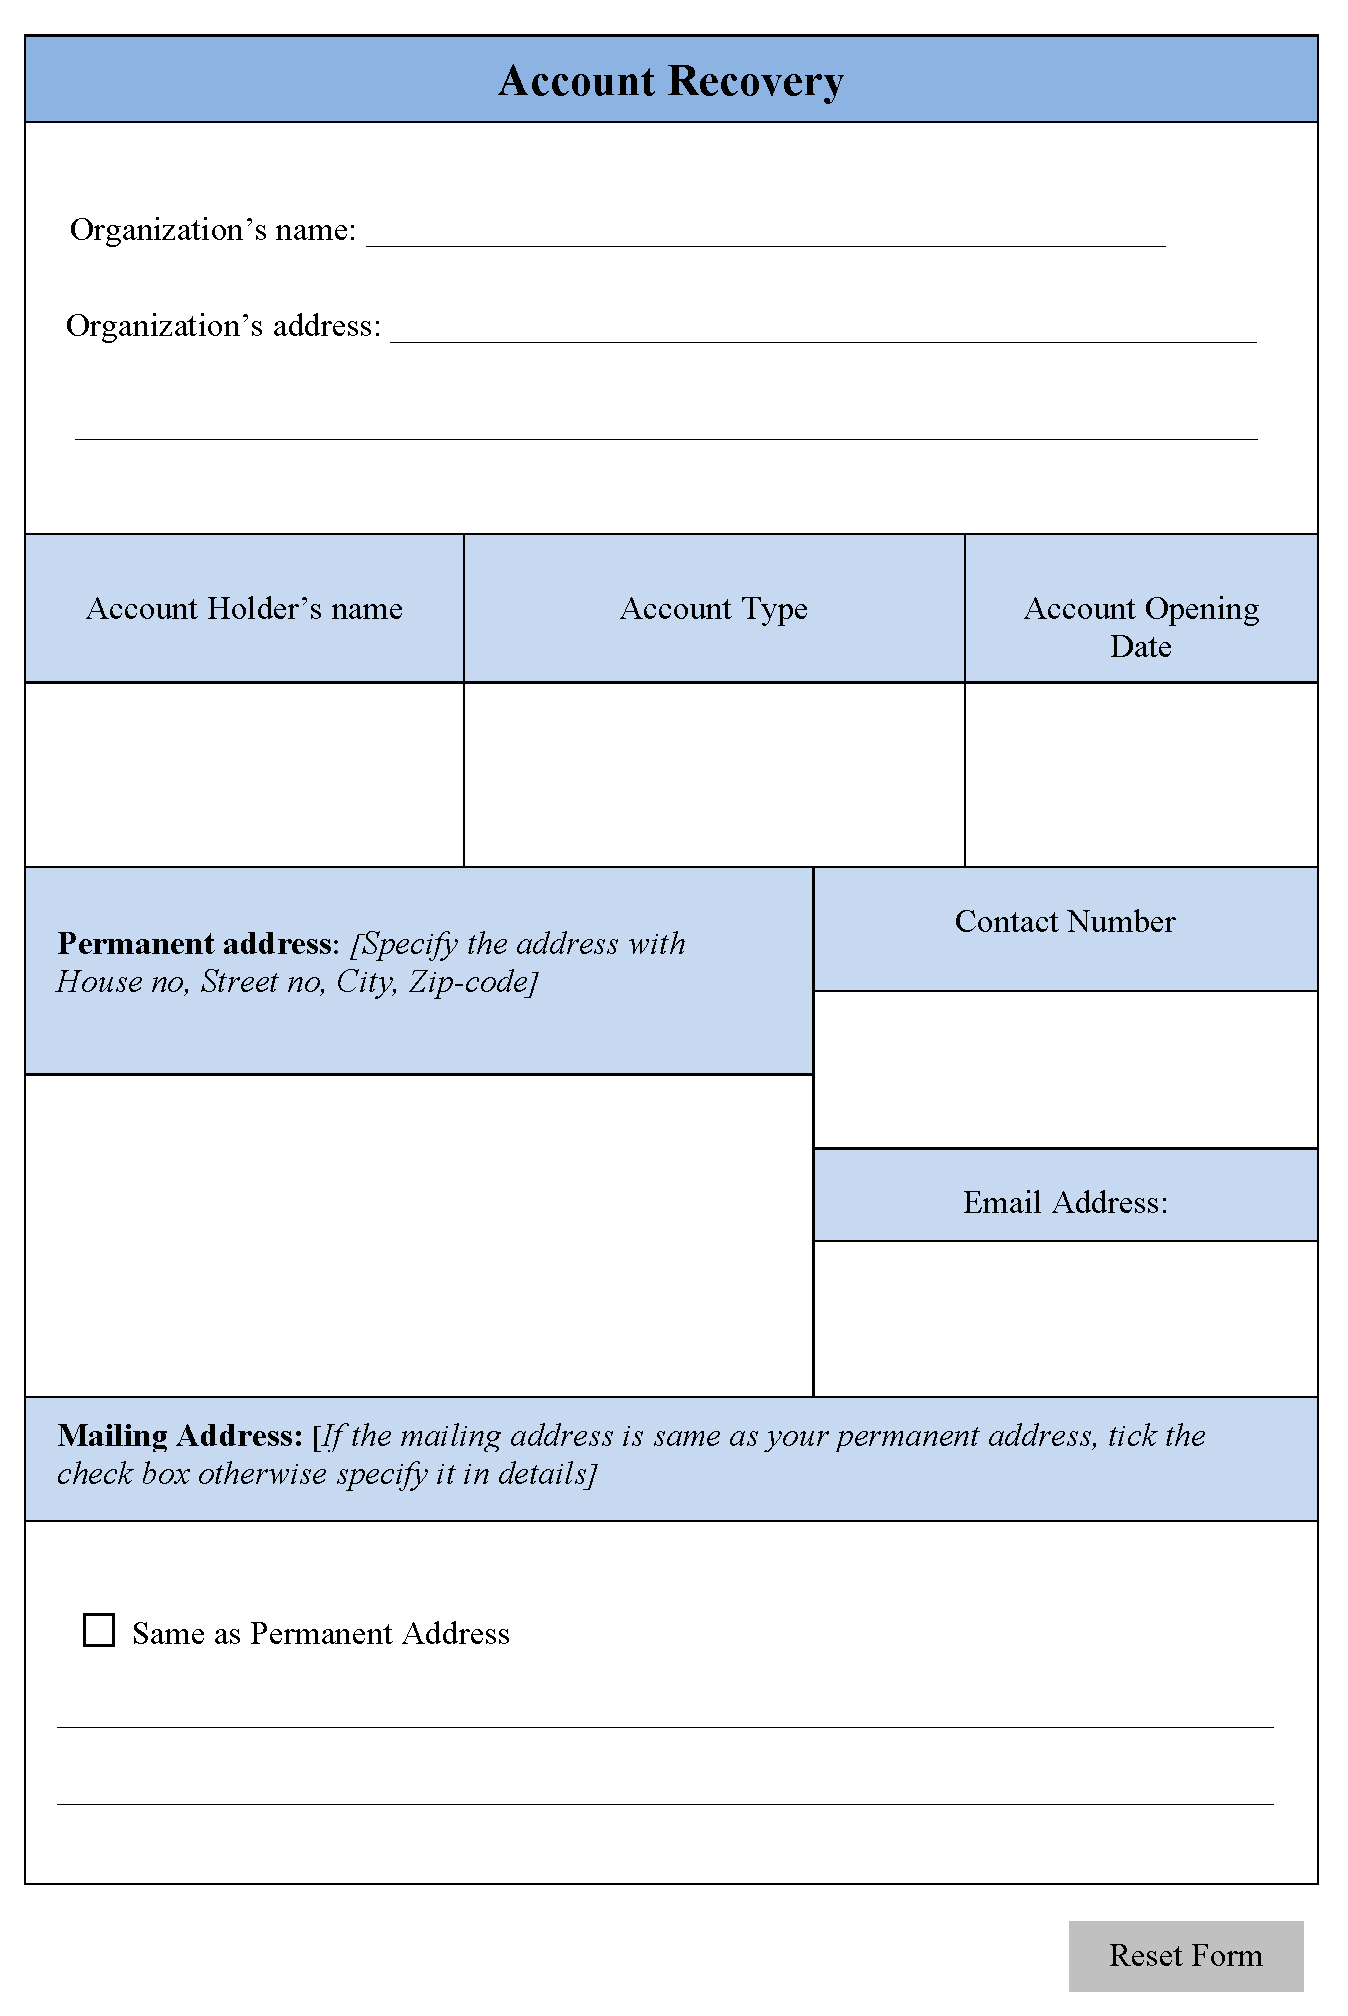 Account Recovery Form | Editable Forms